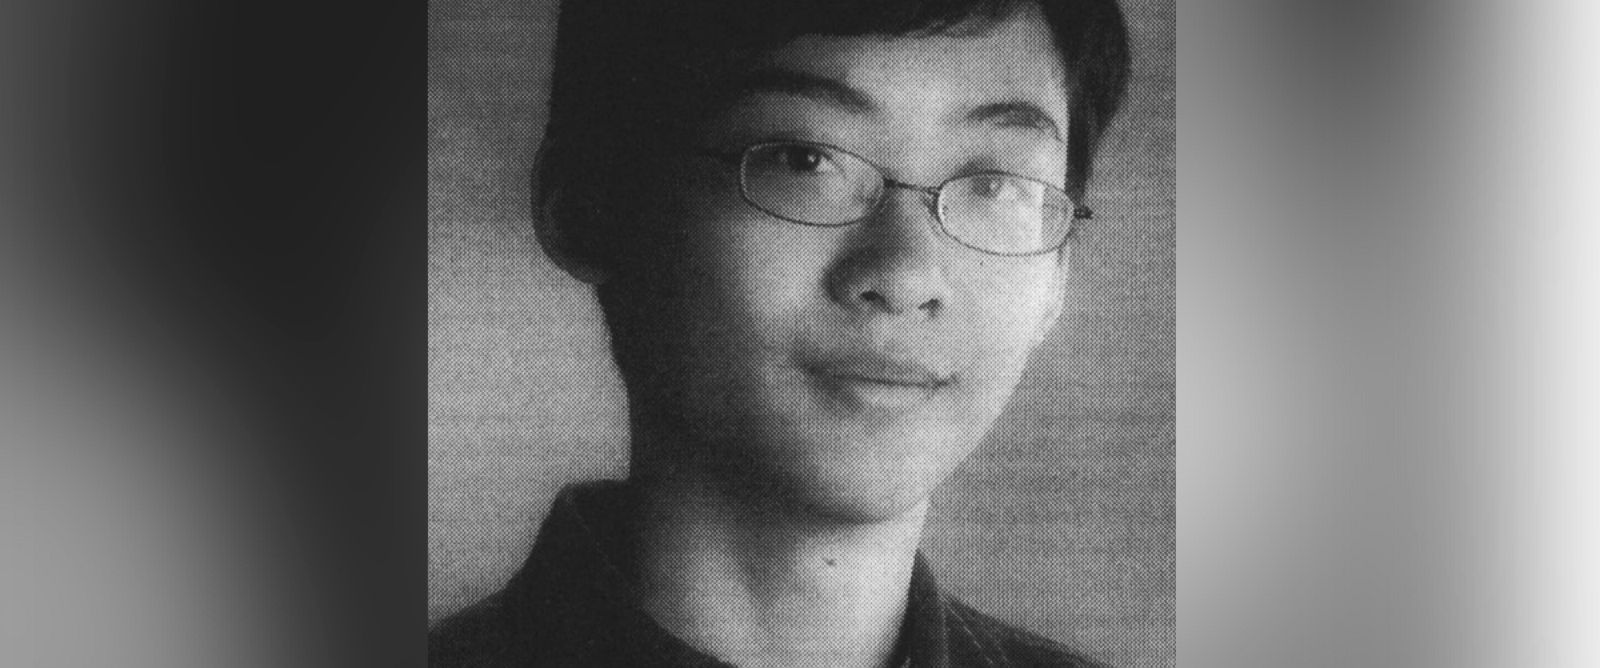 PHOTO: 19-year-old Hye Min Choi disappeared shortly after checking in for a flight to Greensboro, North Carolina